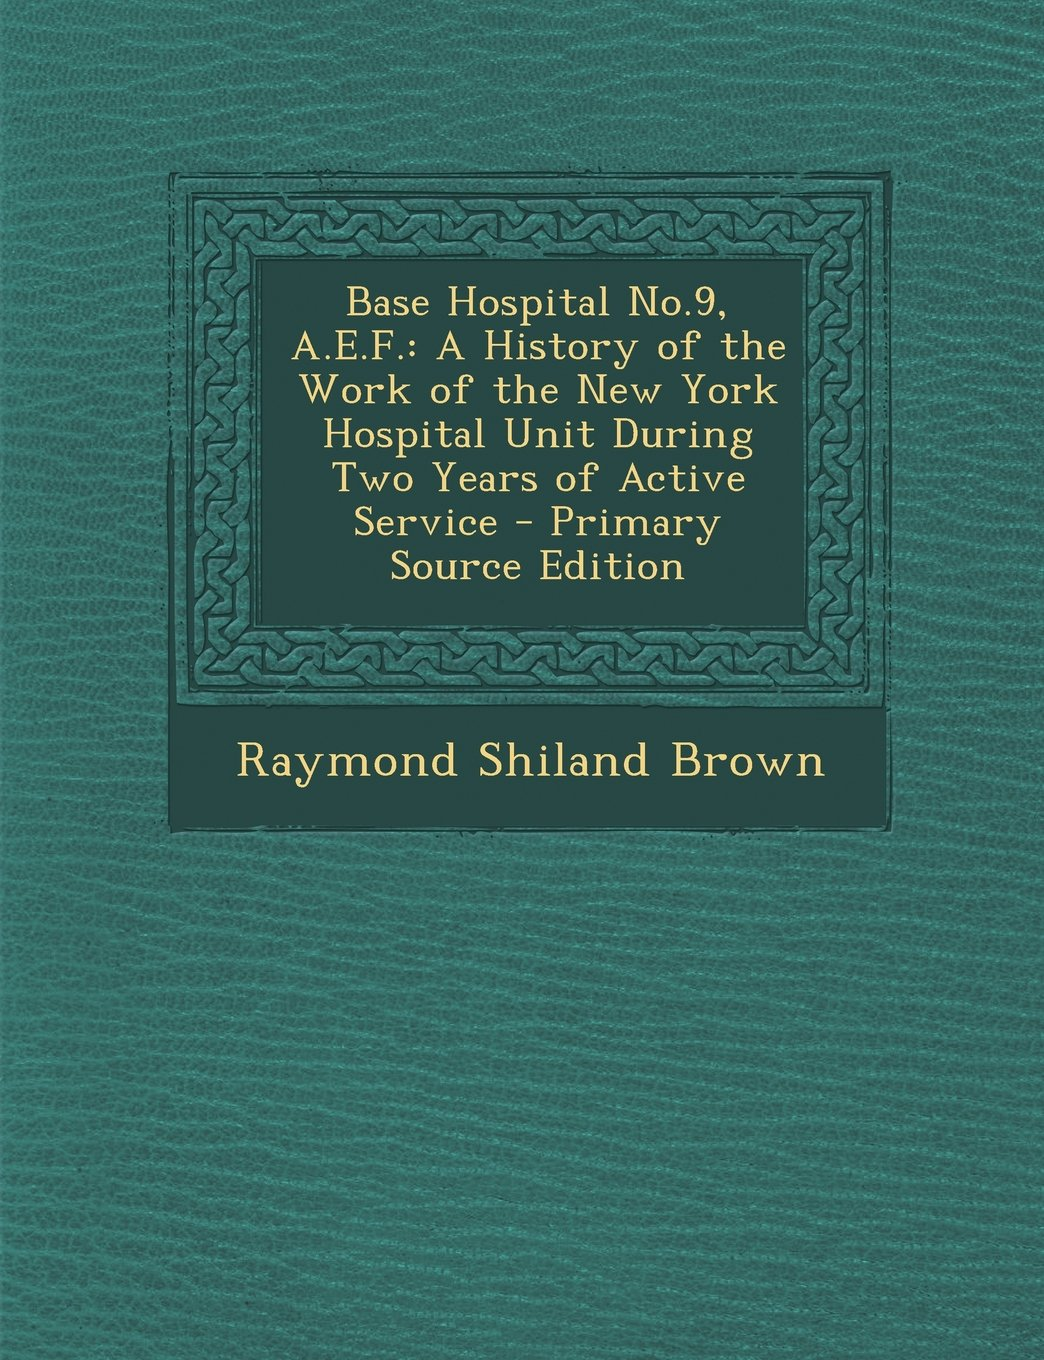 Read Online Base Hospital No.9, A.E.F.: A History of the Work of the New York Hospital Unit During Two Years of Active Service - Primary Source Edition ebook